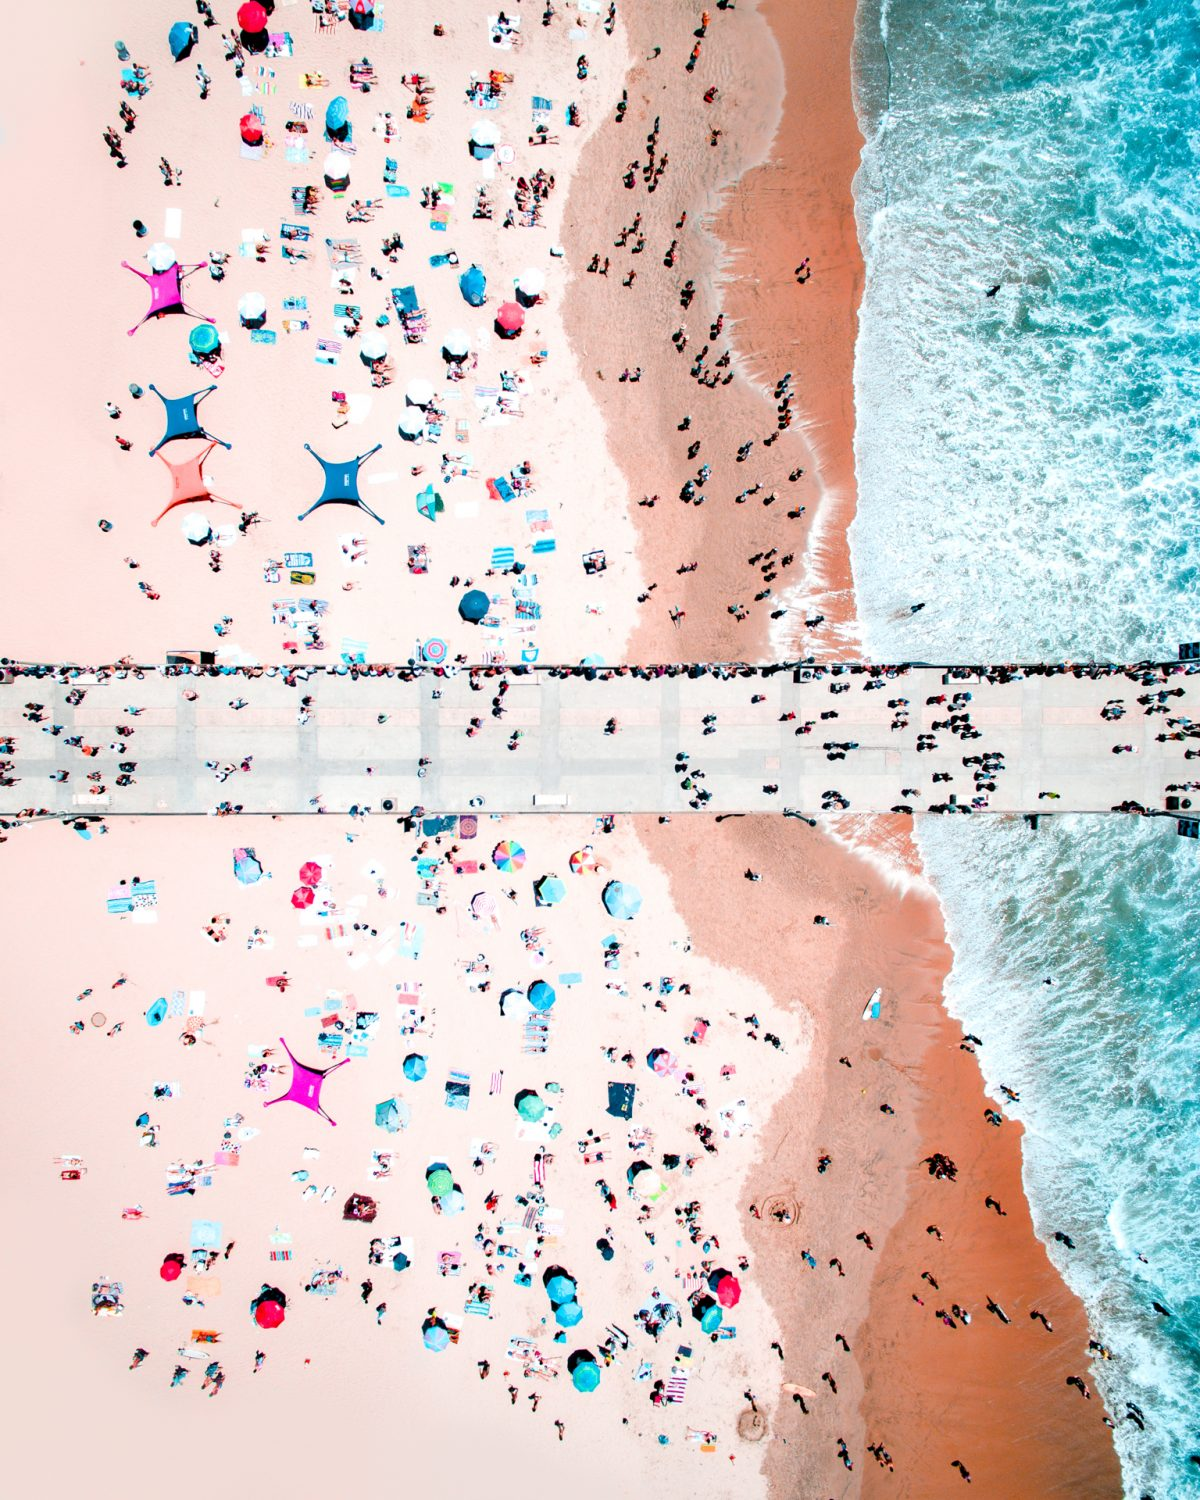 Drone, Beach, Crowd, Ocean